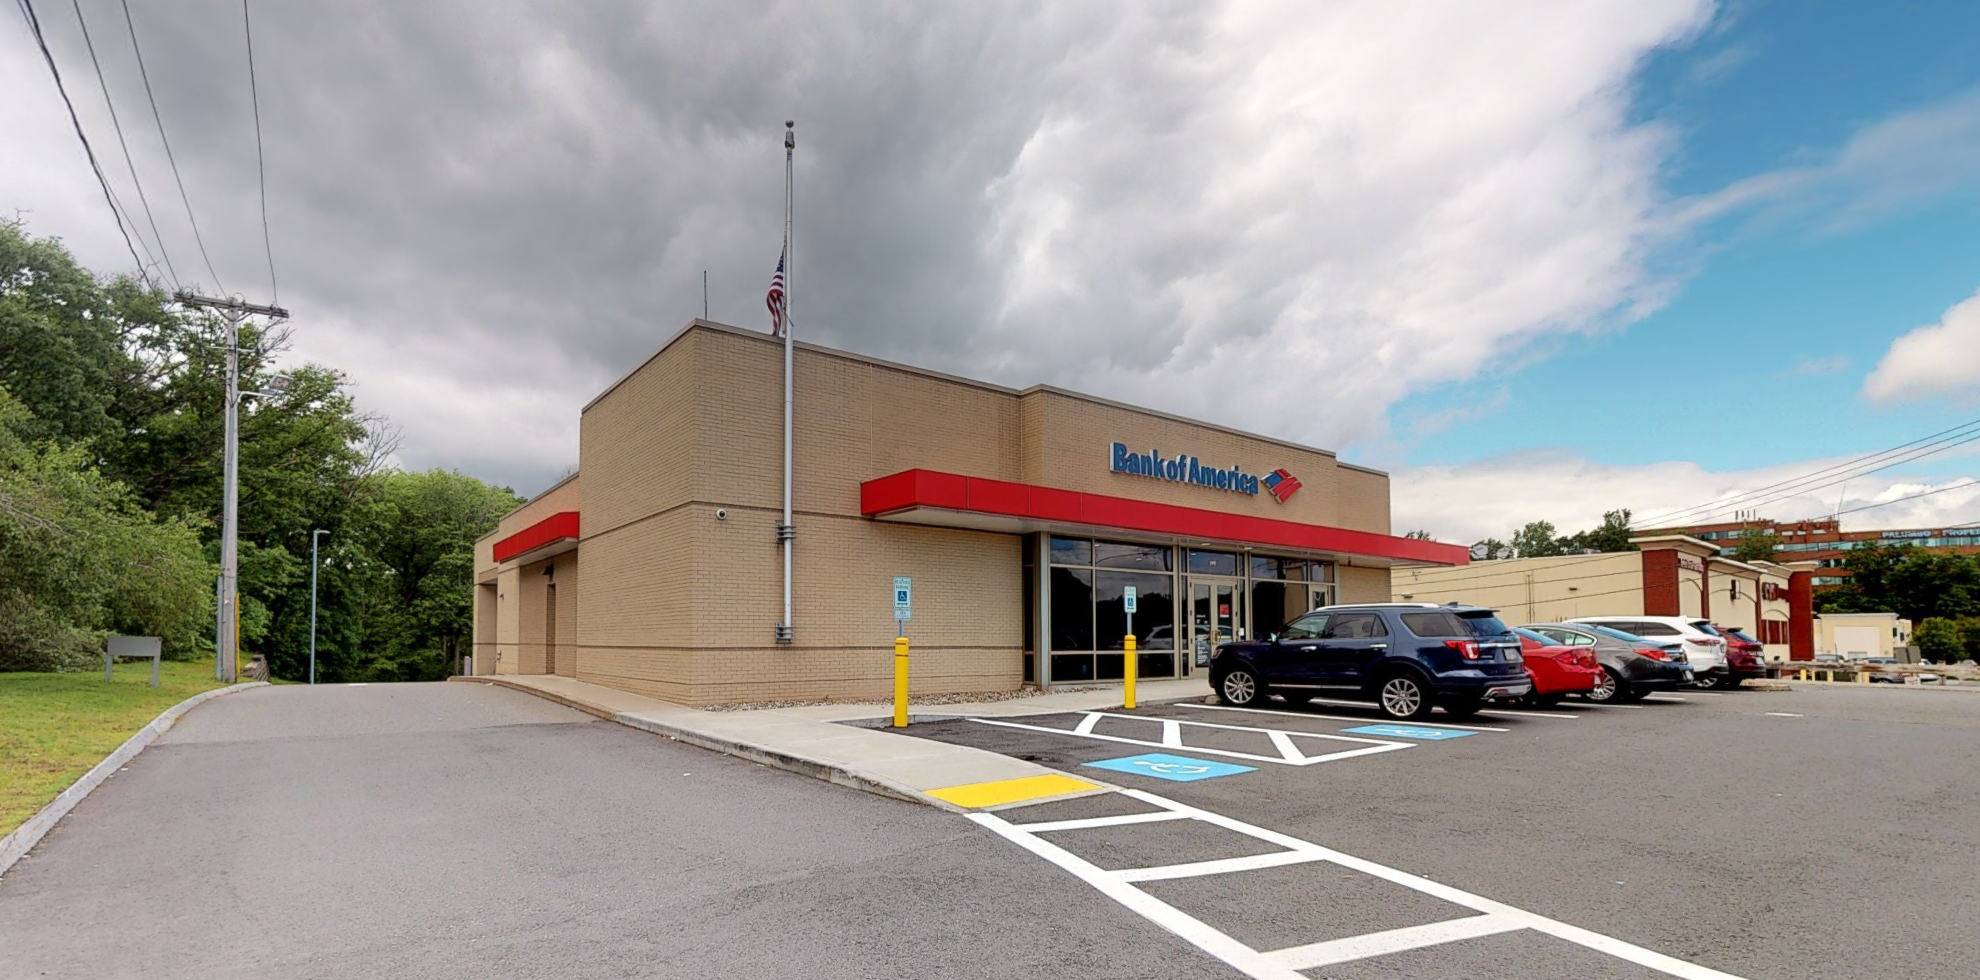 Bank of America financial center with drive-thru ATM   1093 Broadway, Saugus, MA 01906